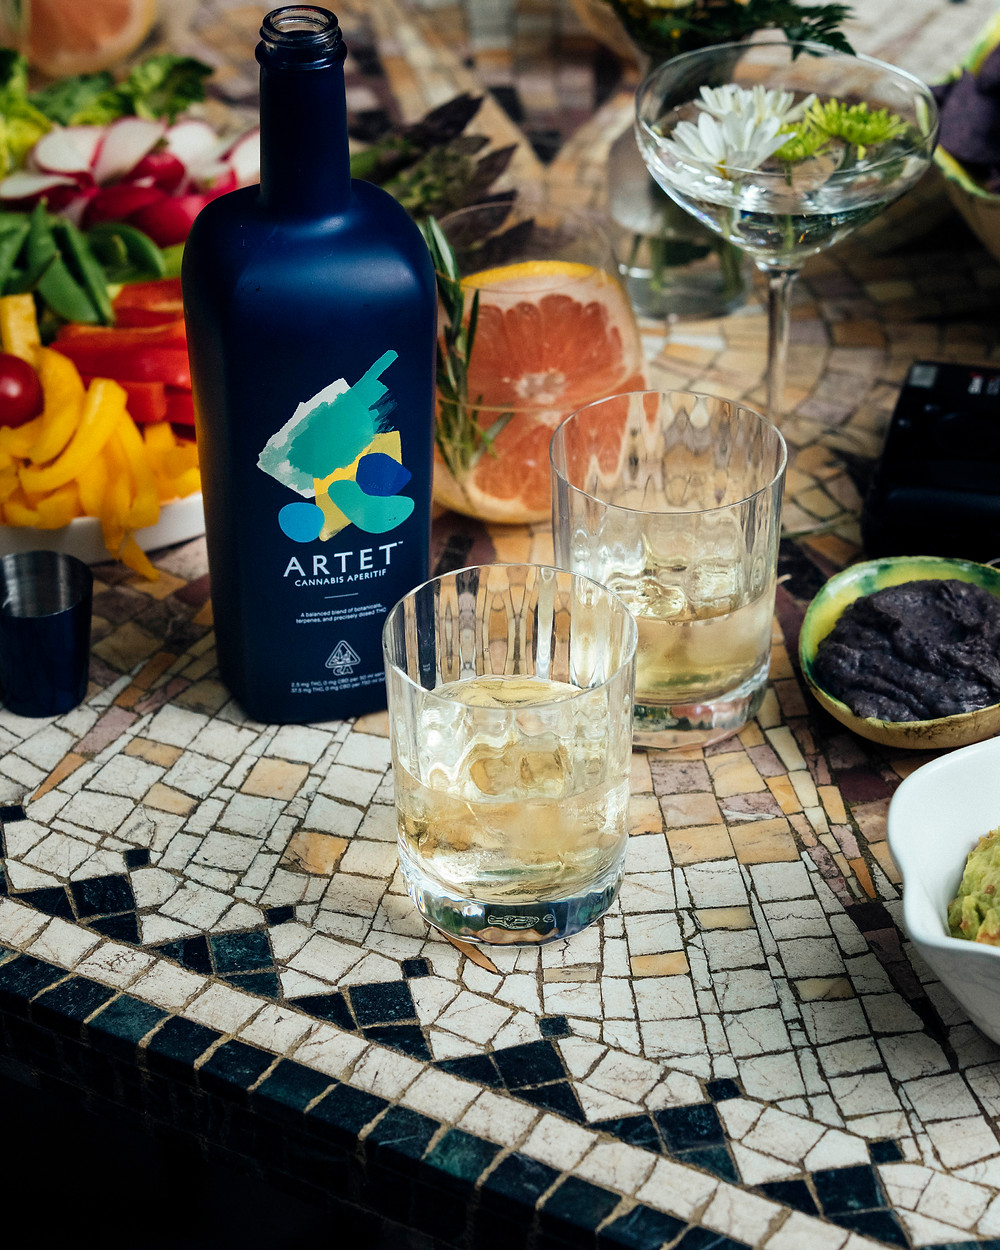 A bottle of Artet with half-filled glasses on a mosaic table topped with slices of various fruit